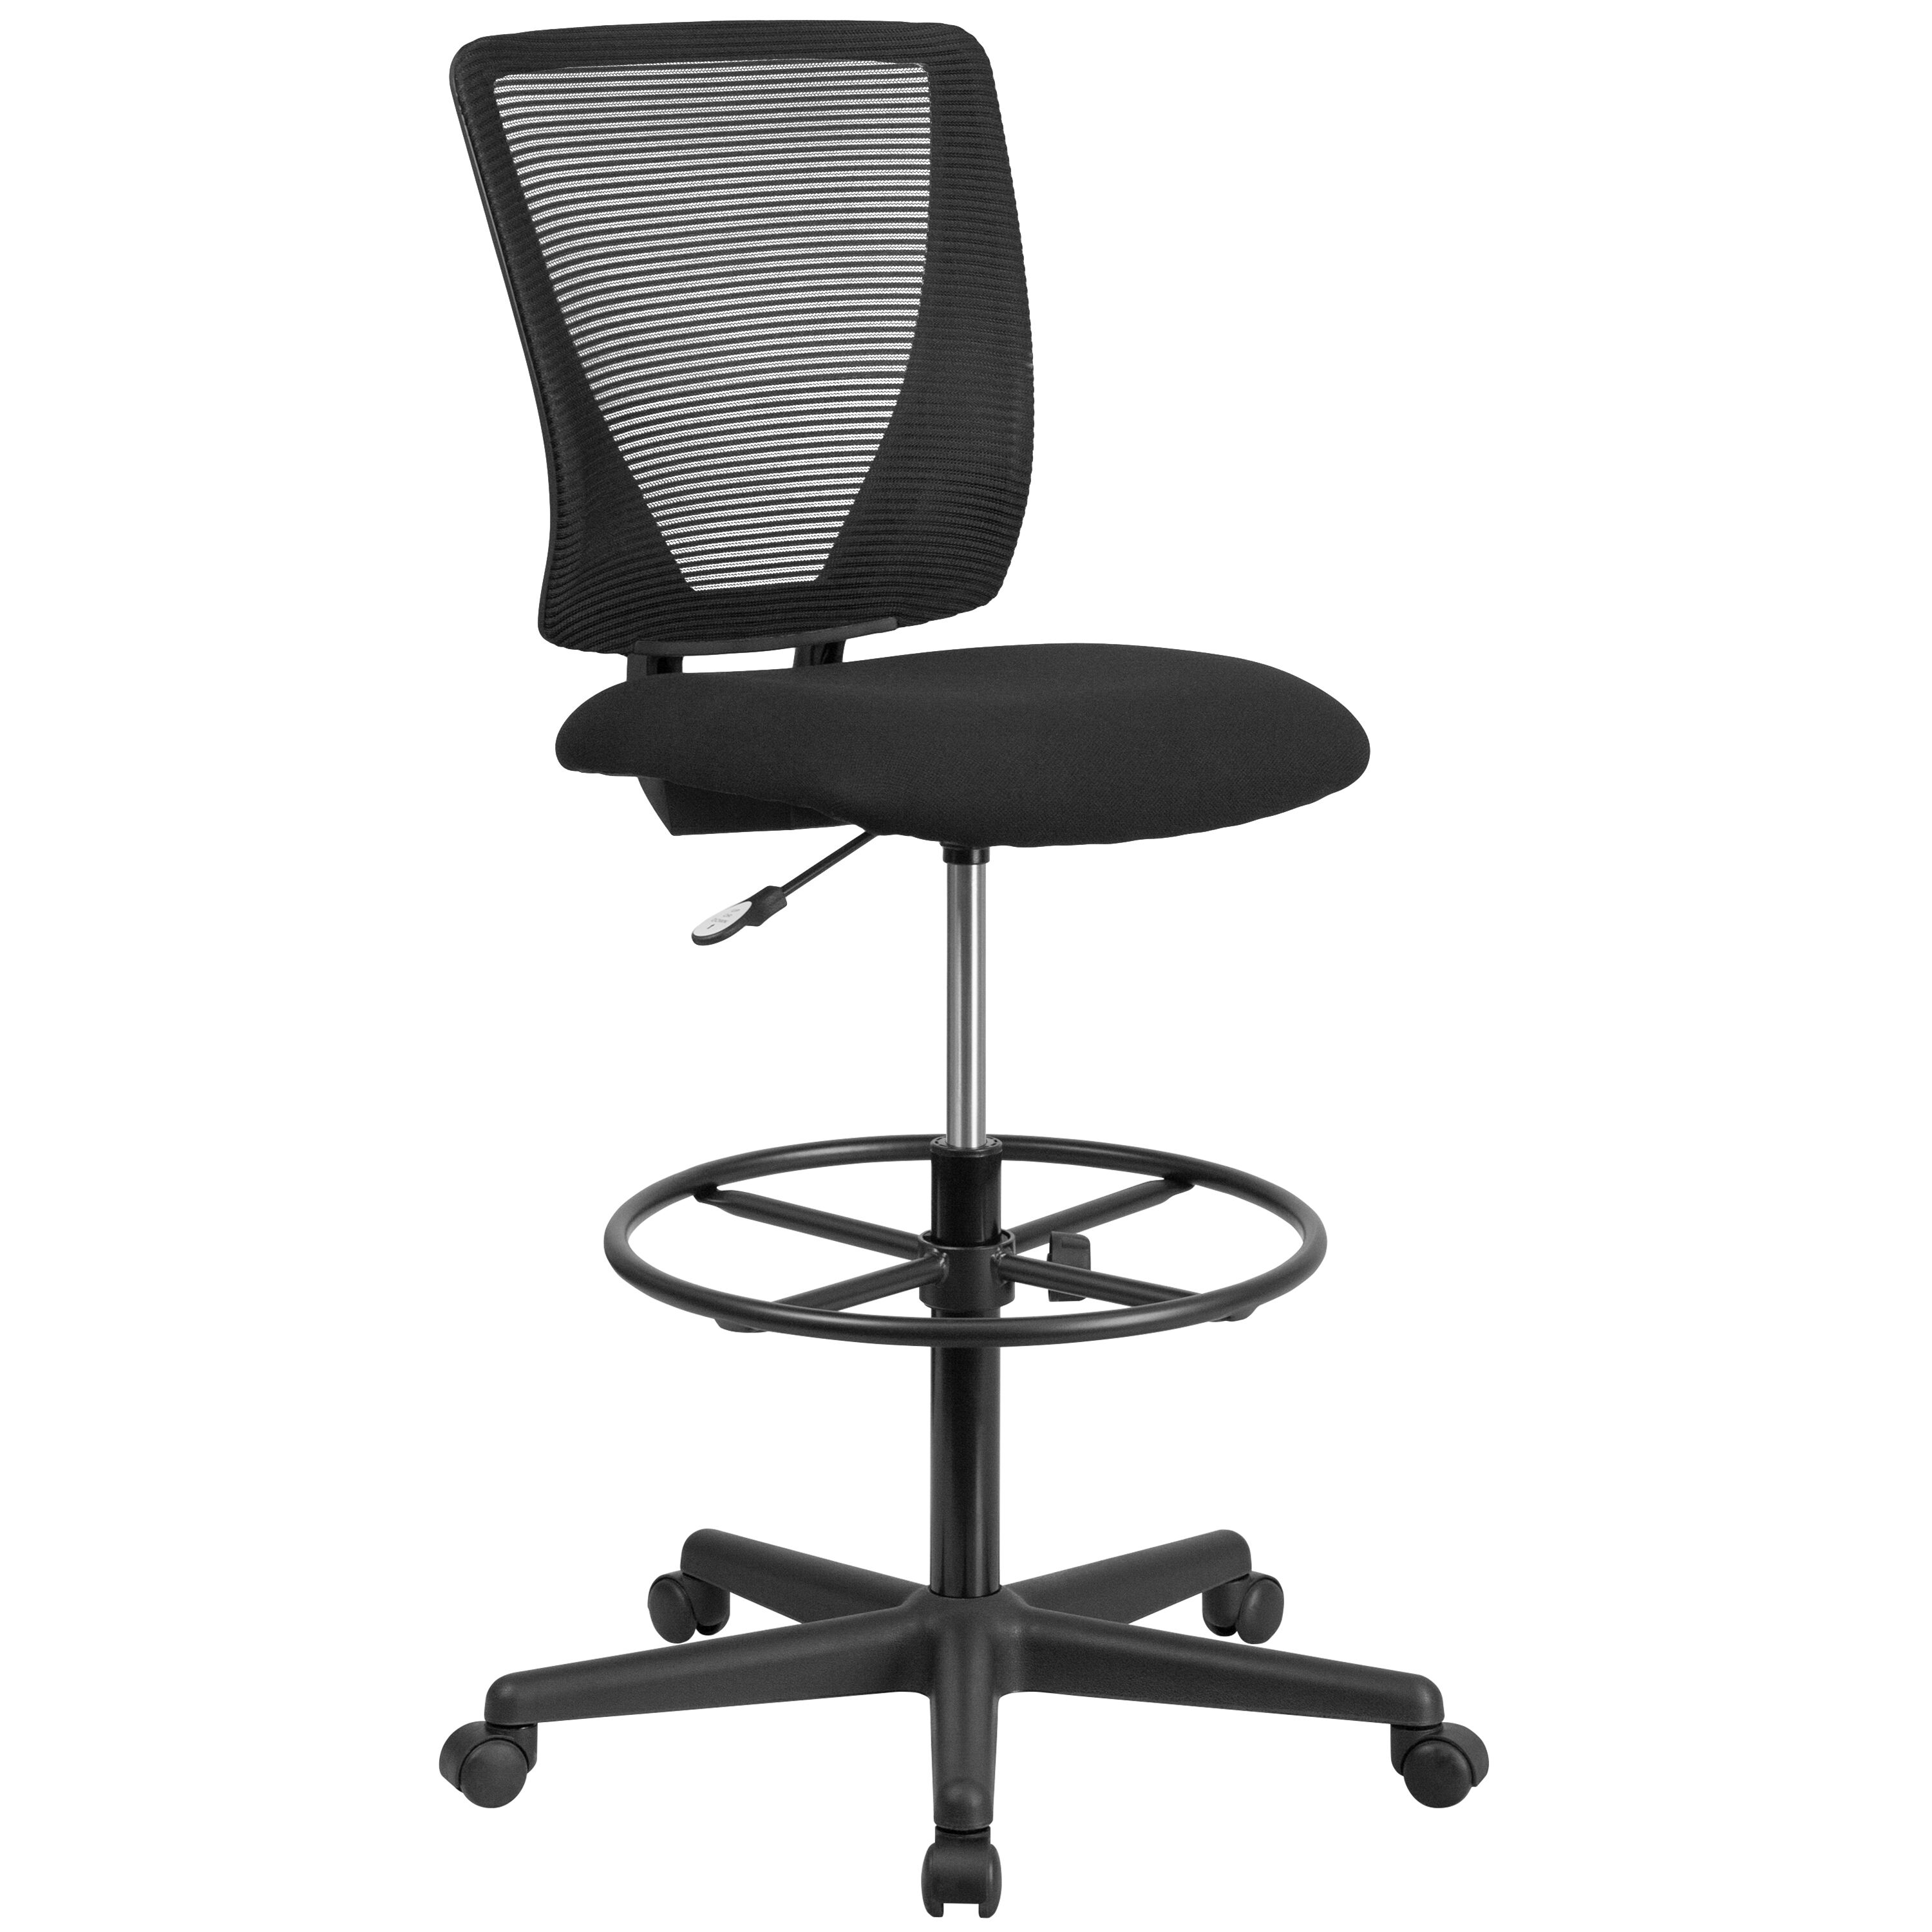 Superbe Our Ergonomic Mid Back Mesh Drafting Chair With Black Fabric Seat And  Adjustable Foot Ring